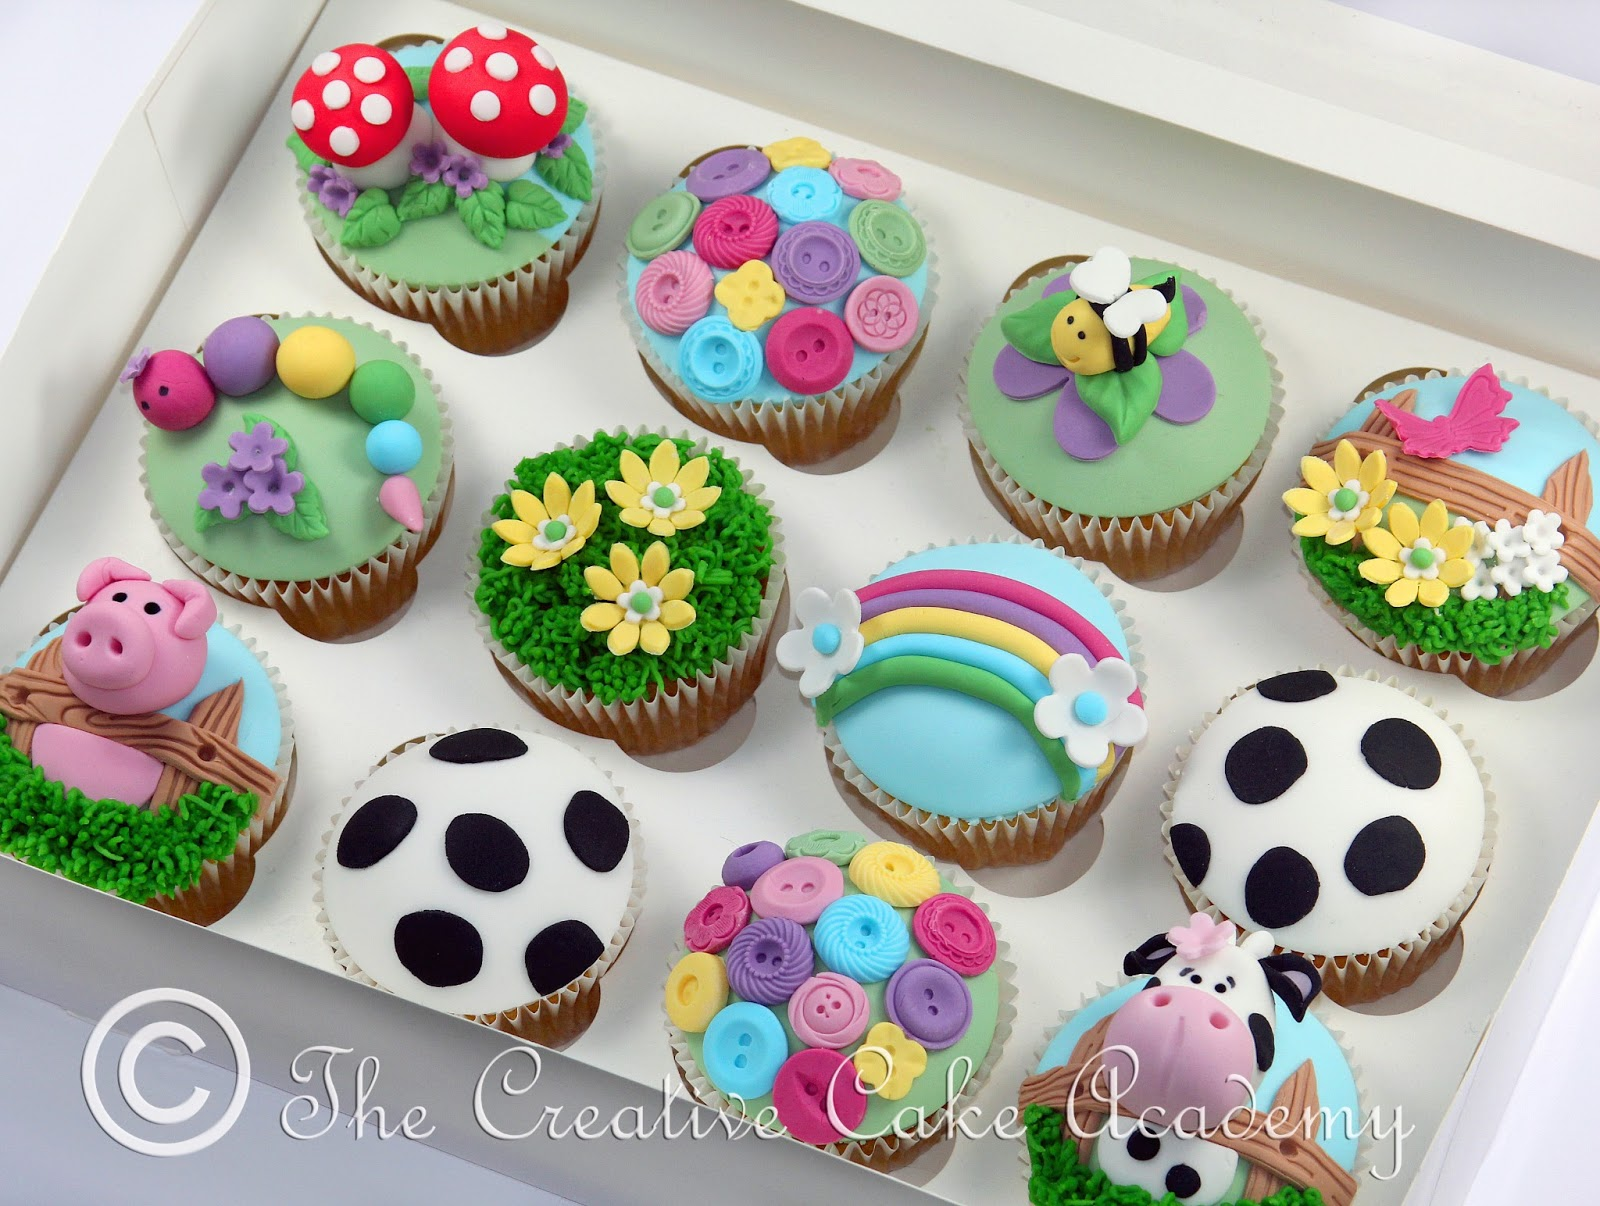 The Creative Cake Academy: CHILDREN'S PARTY CUPCAKES